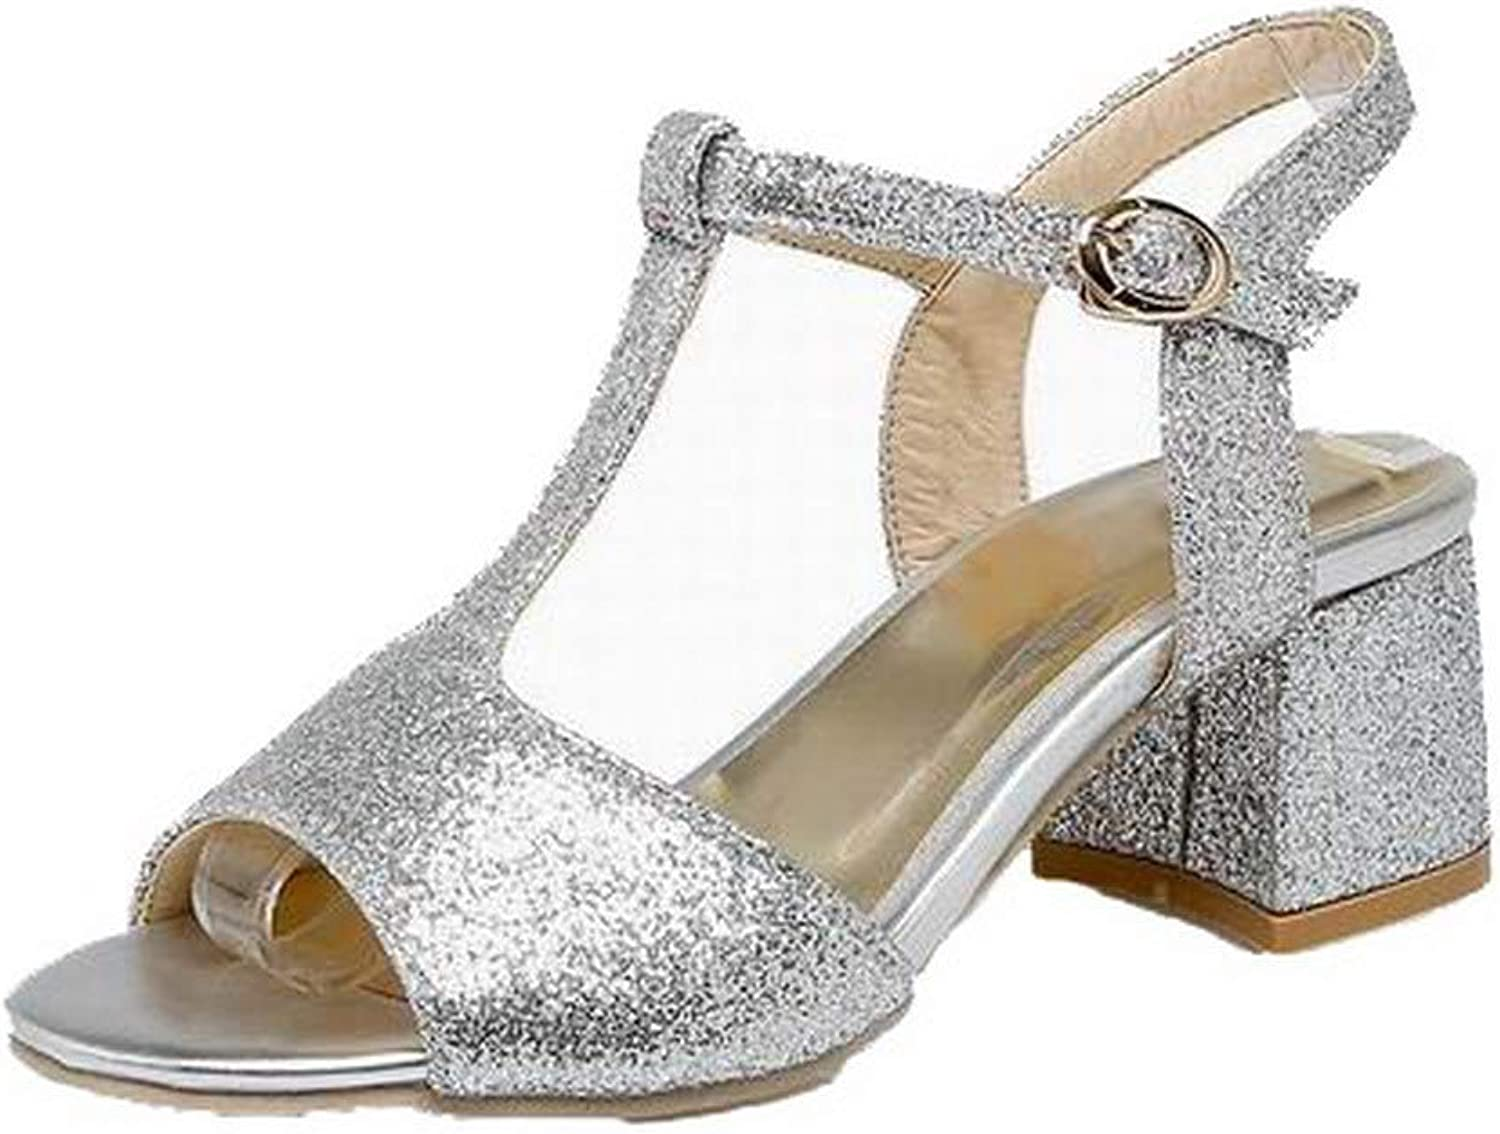 WeenFashion Women's Solid Blend Materials Kitten-Heels Open-Toe Buckle Sandals, AMGLX010402